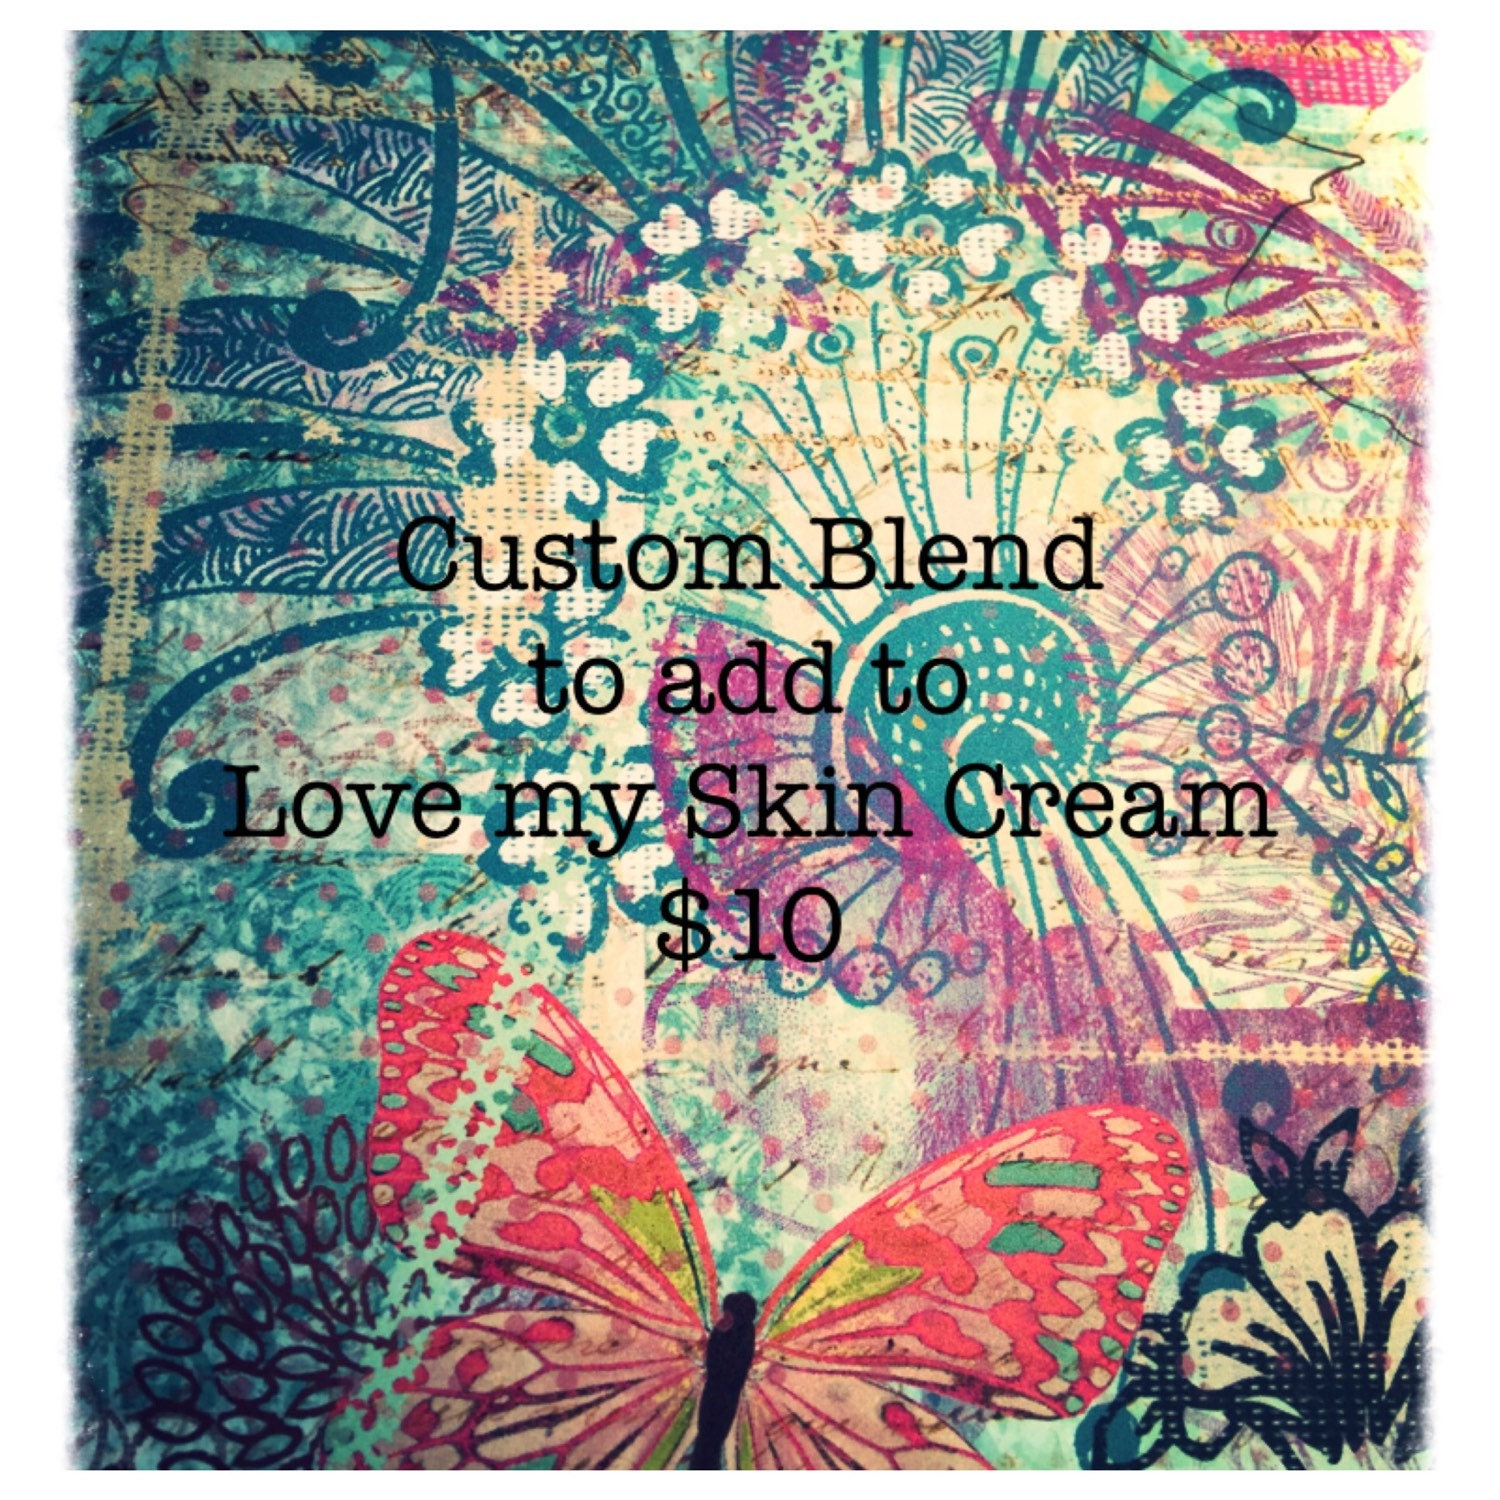 Love My Skin Unscented herbal infused cream ON SALE was 20 now 12